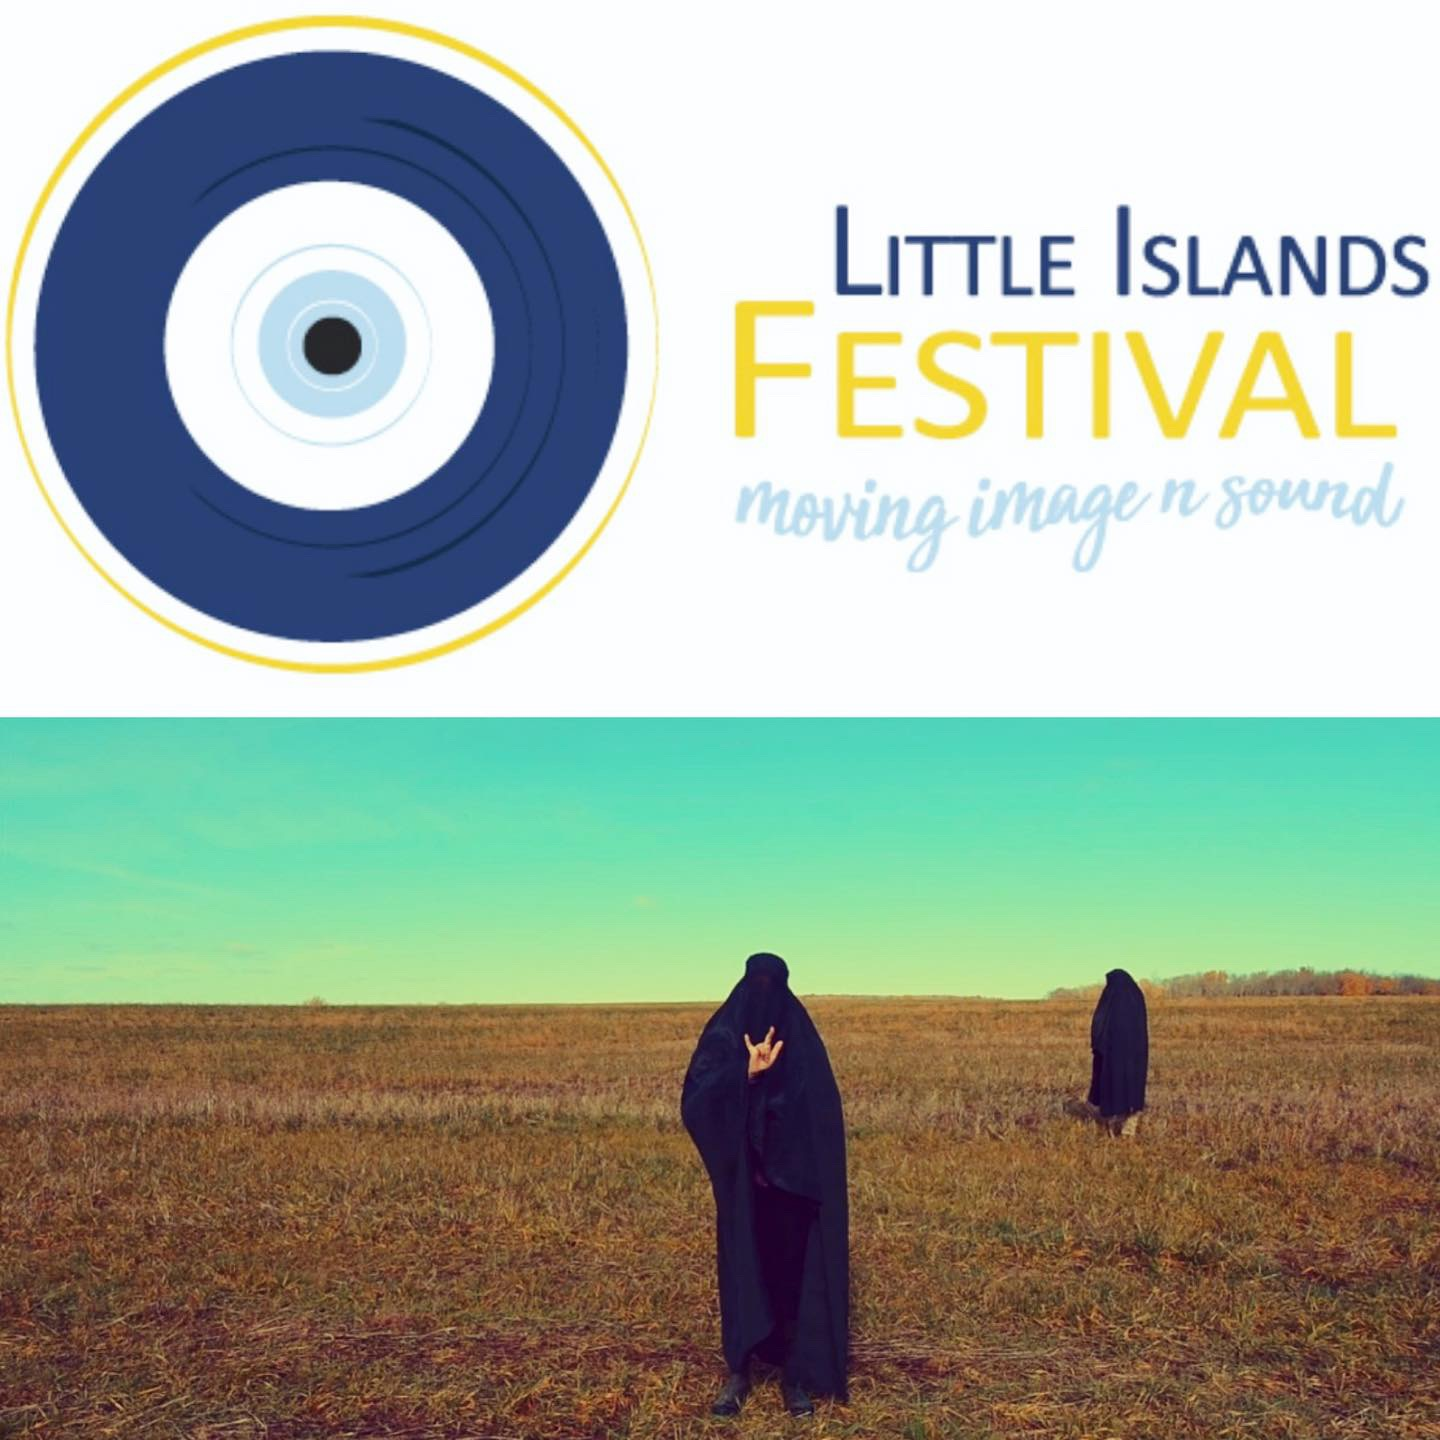 Little Islands Festival